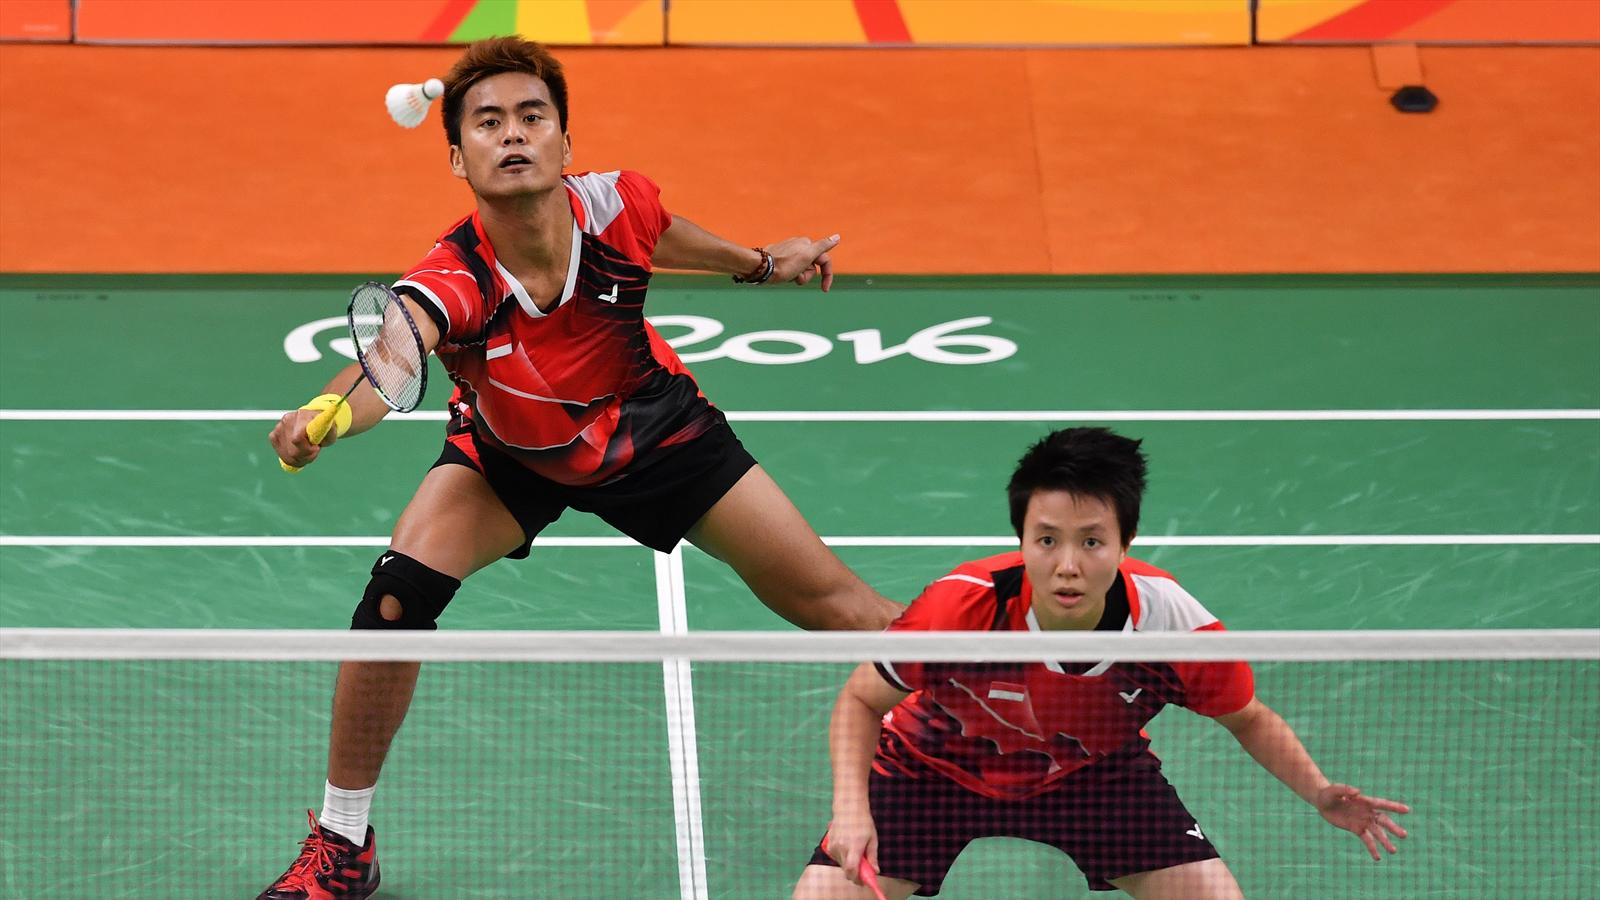 Olympics Rio 2016: Indonesia beat Malaysia for badminton mixed doubles gold - Rio 2016 ...